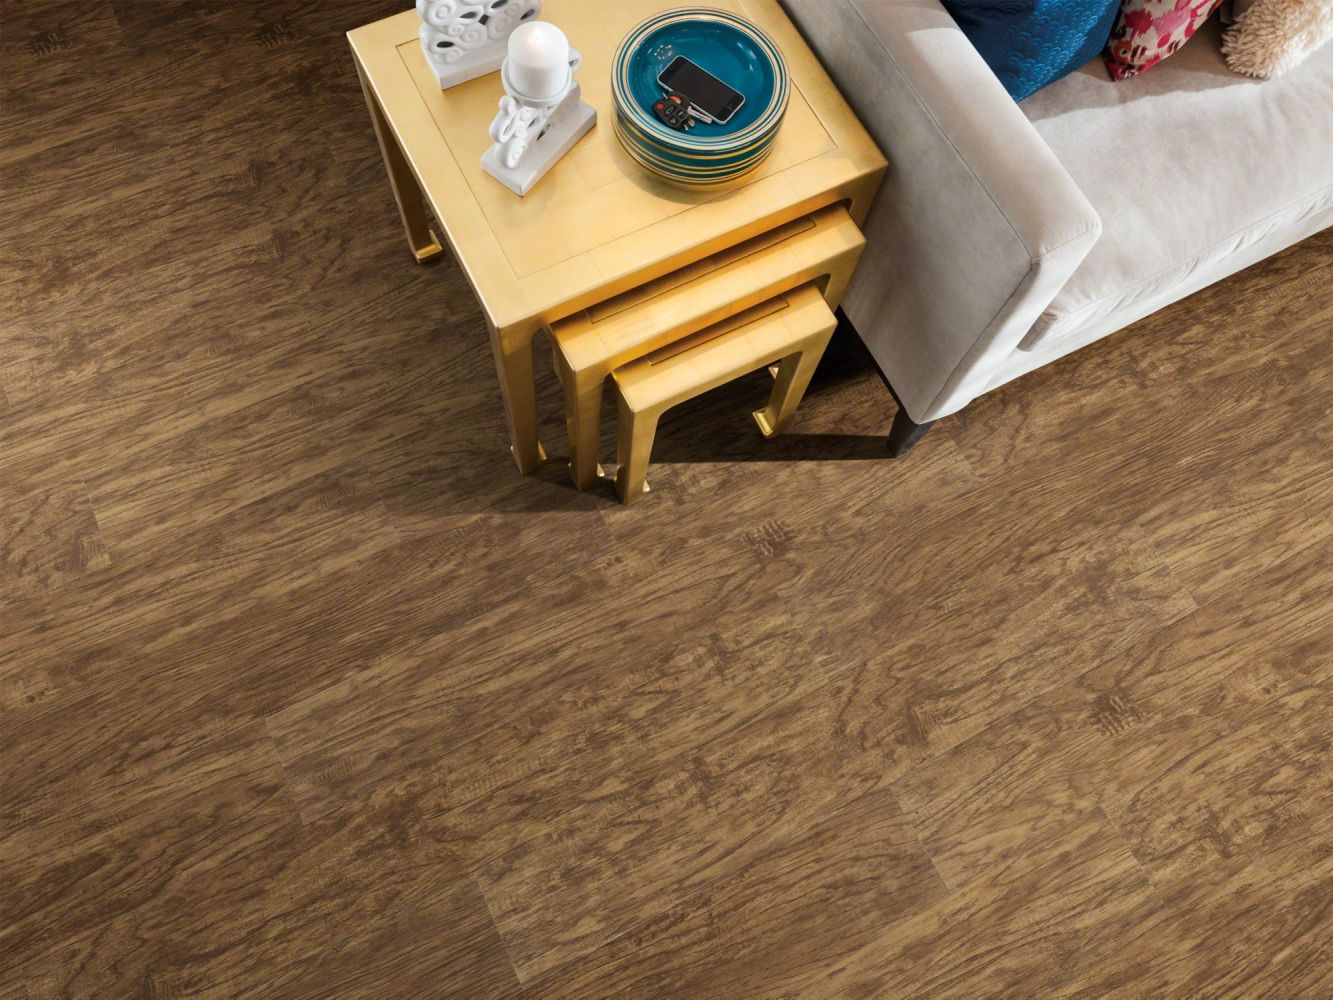 Shaw Floors Vinyl Residential Endura 512c Plus Sienna Oak 00452_0736V